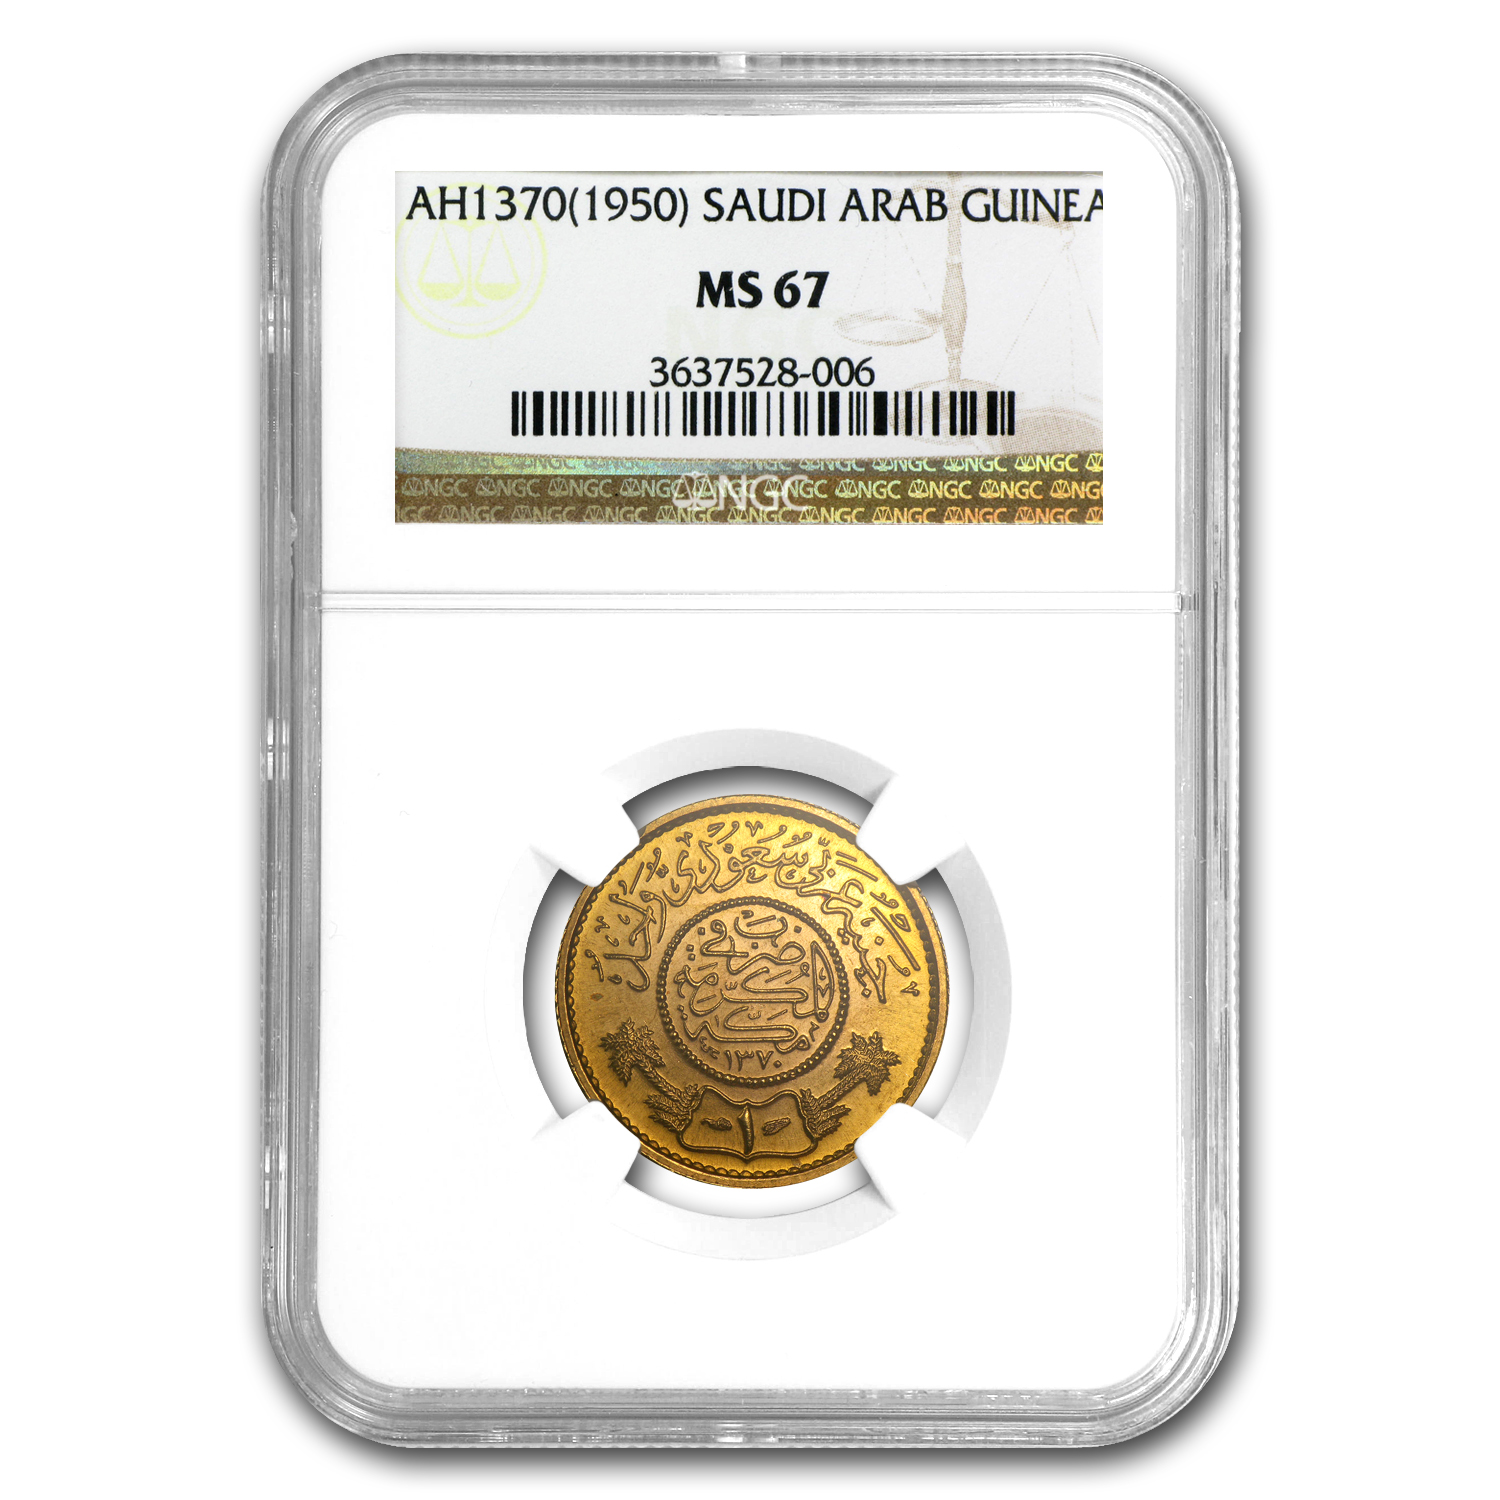 AH1370/1950 Saudi Arabia Gold One Guinea MS-67 NGC